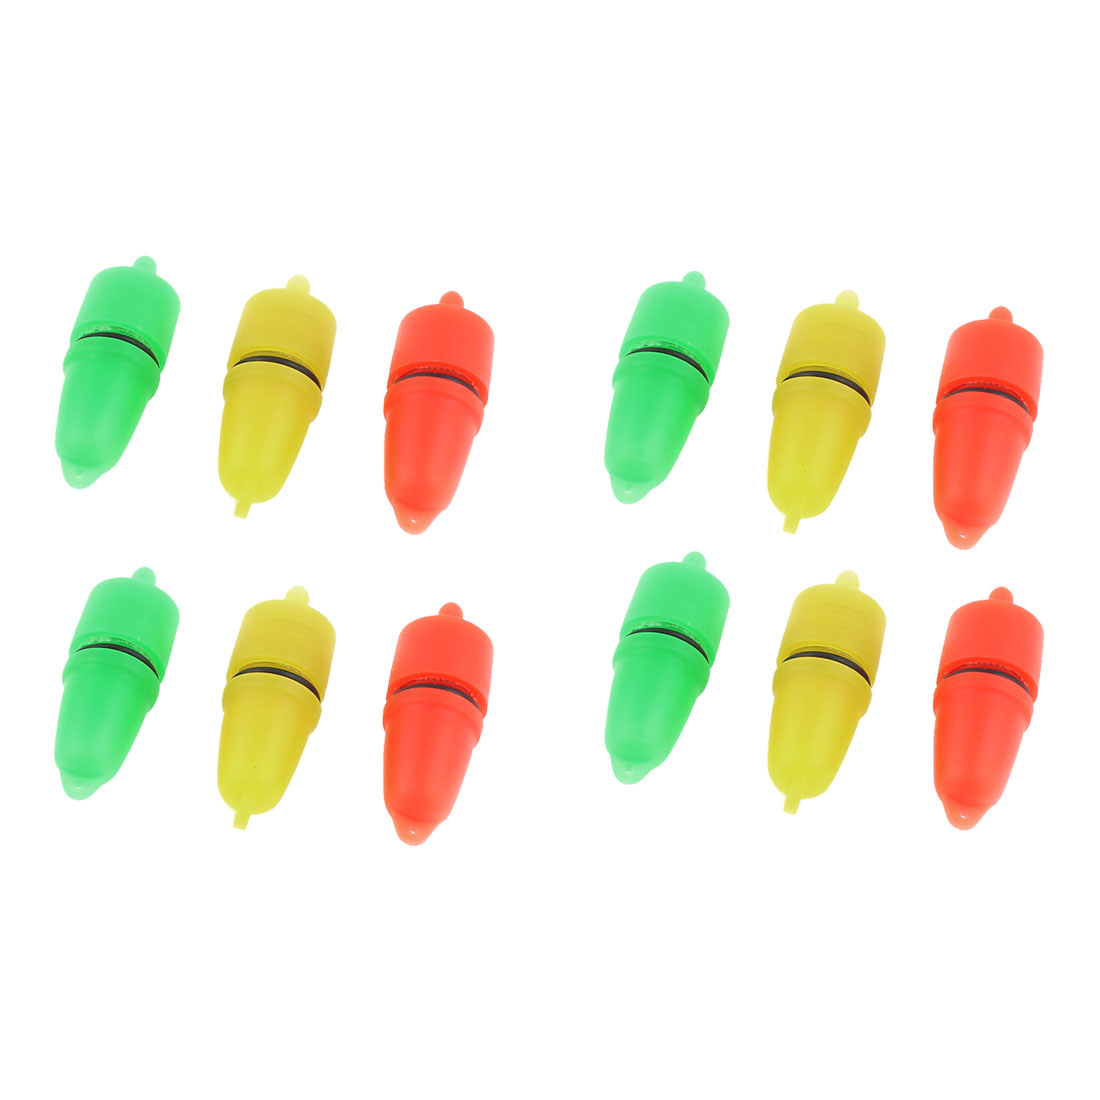 12 Pcs Battery Powered LED Luminous Fishing Floaters Bobbers 15 x 42mm